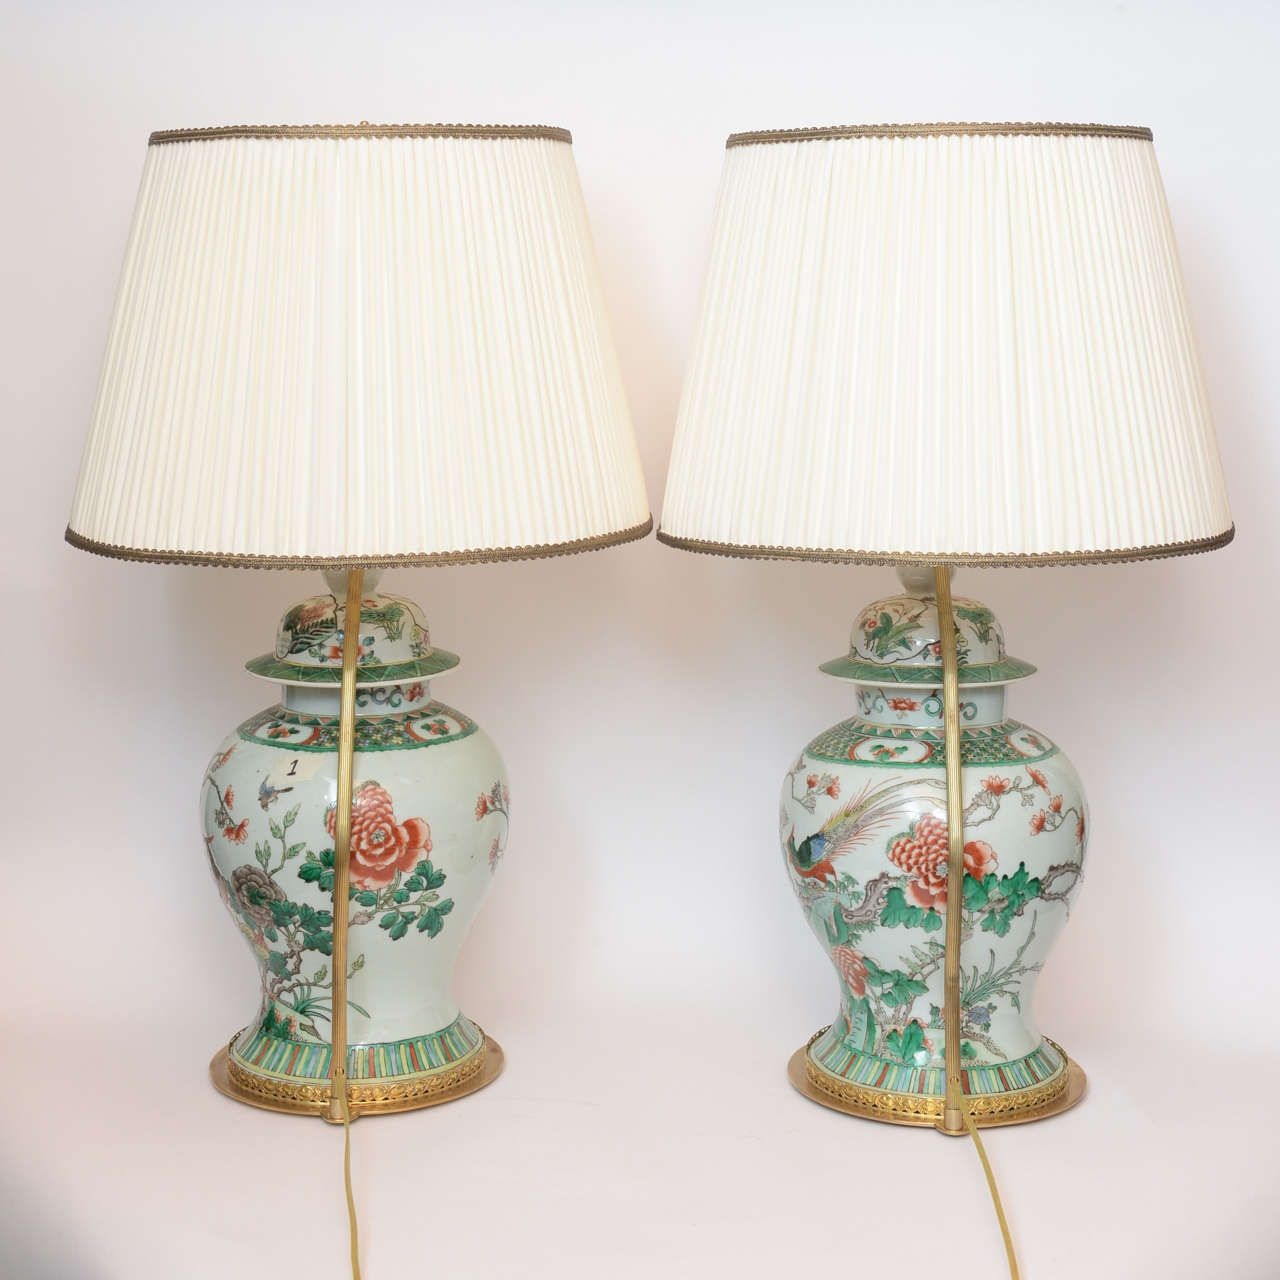 Pair Of 19th Century Chinese Ginger Jar Lamps With Painted Birds And Flowers From